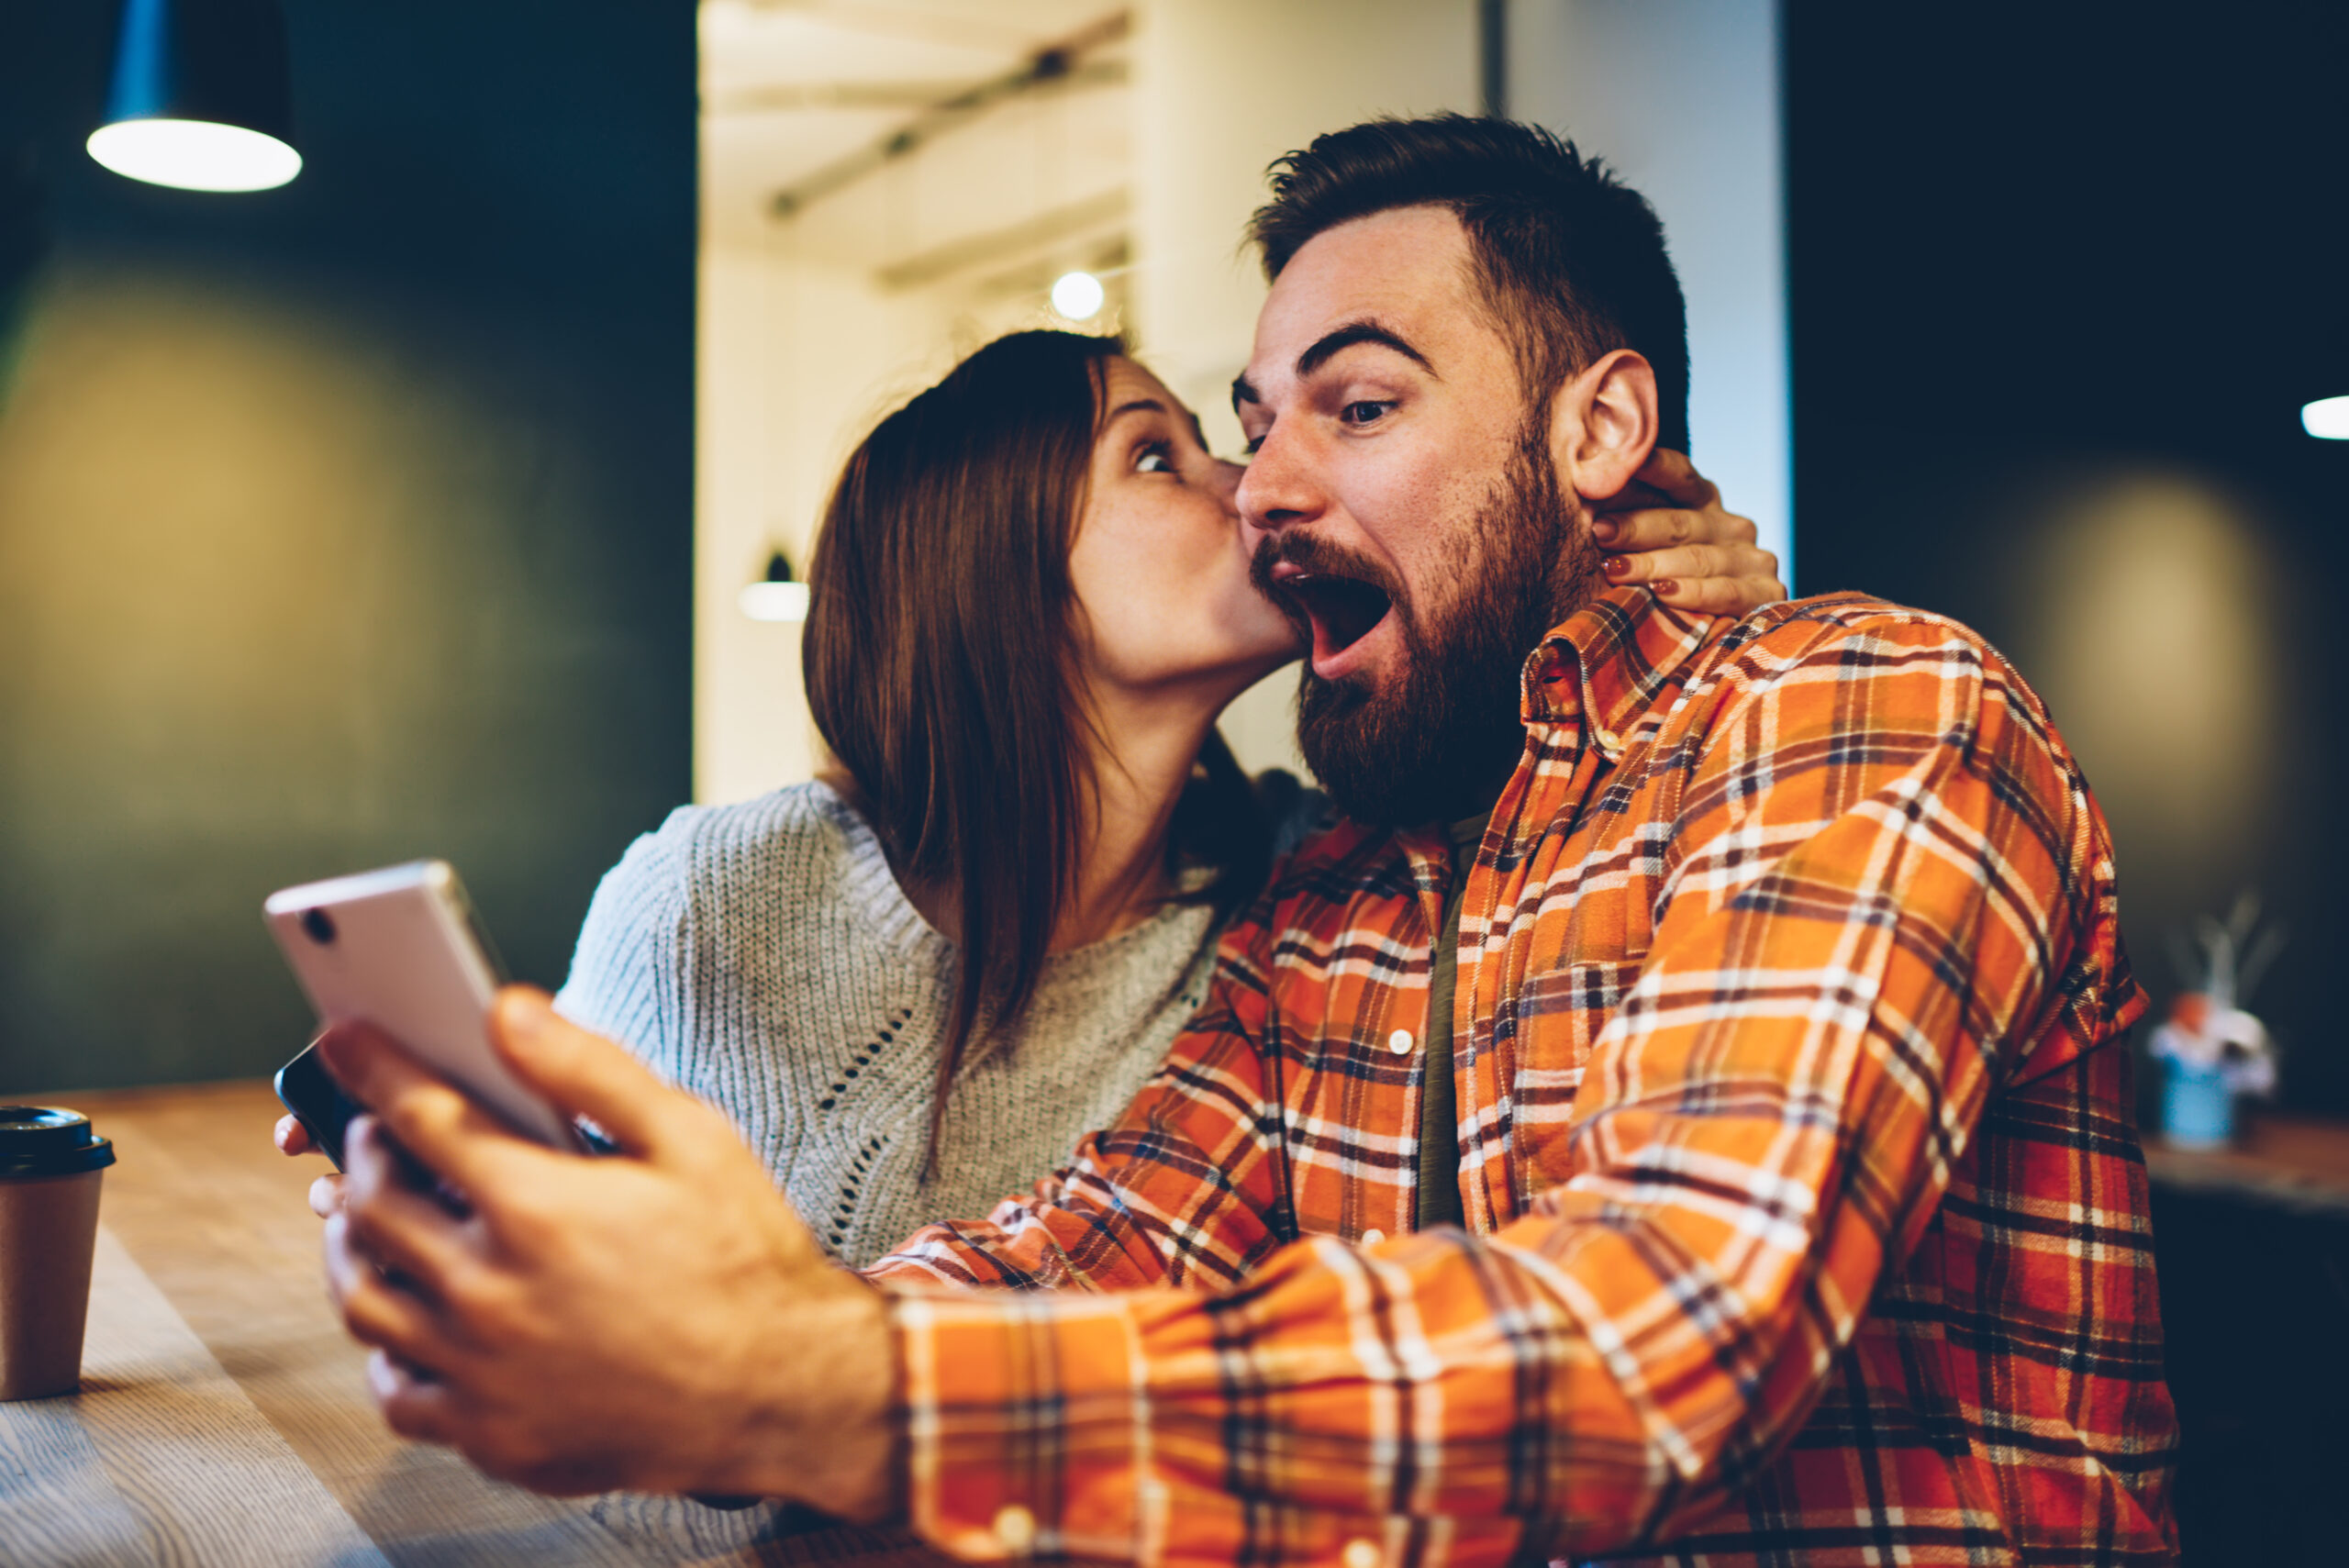 Happy young woman kisses her bearded boyfriend who won prize in internet lottery.Amazed coung couple in love rejoices in victory in online contest on smartphone device sitting at home interior